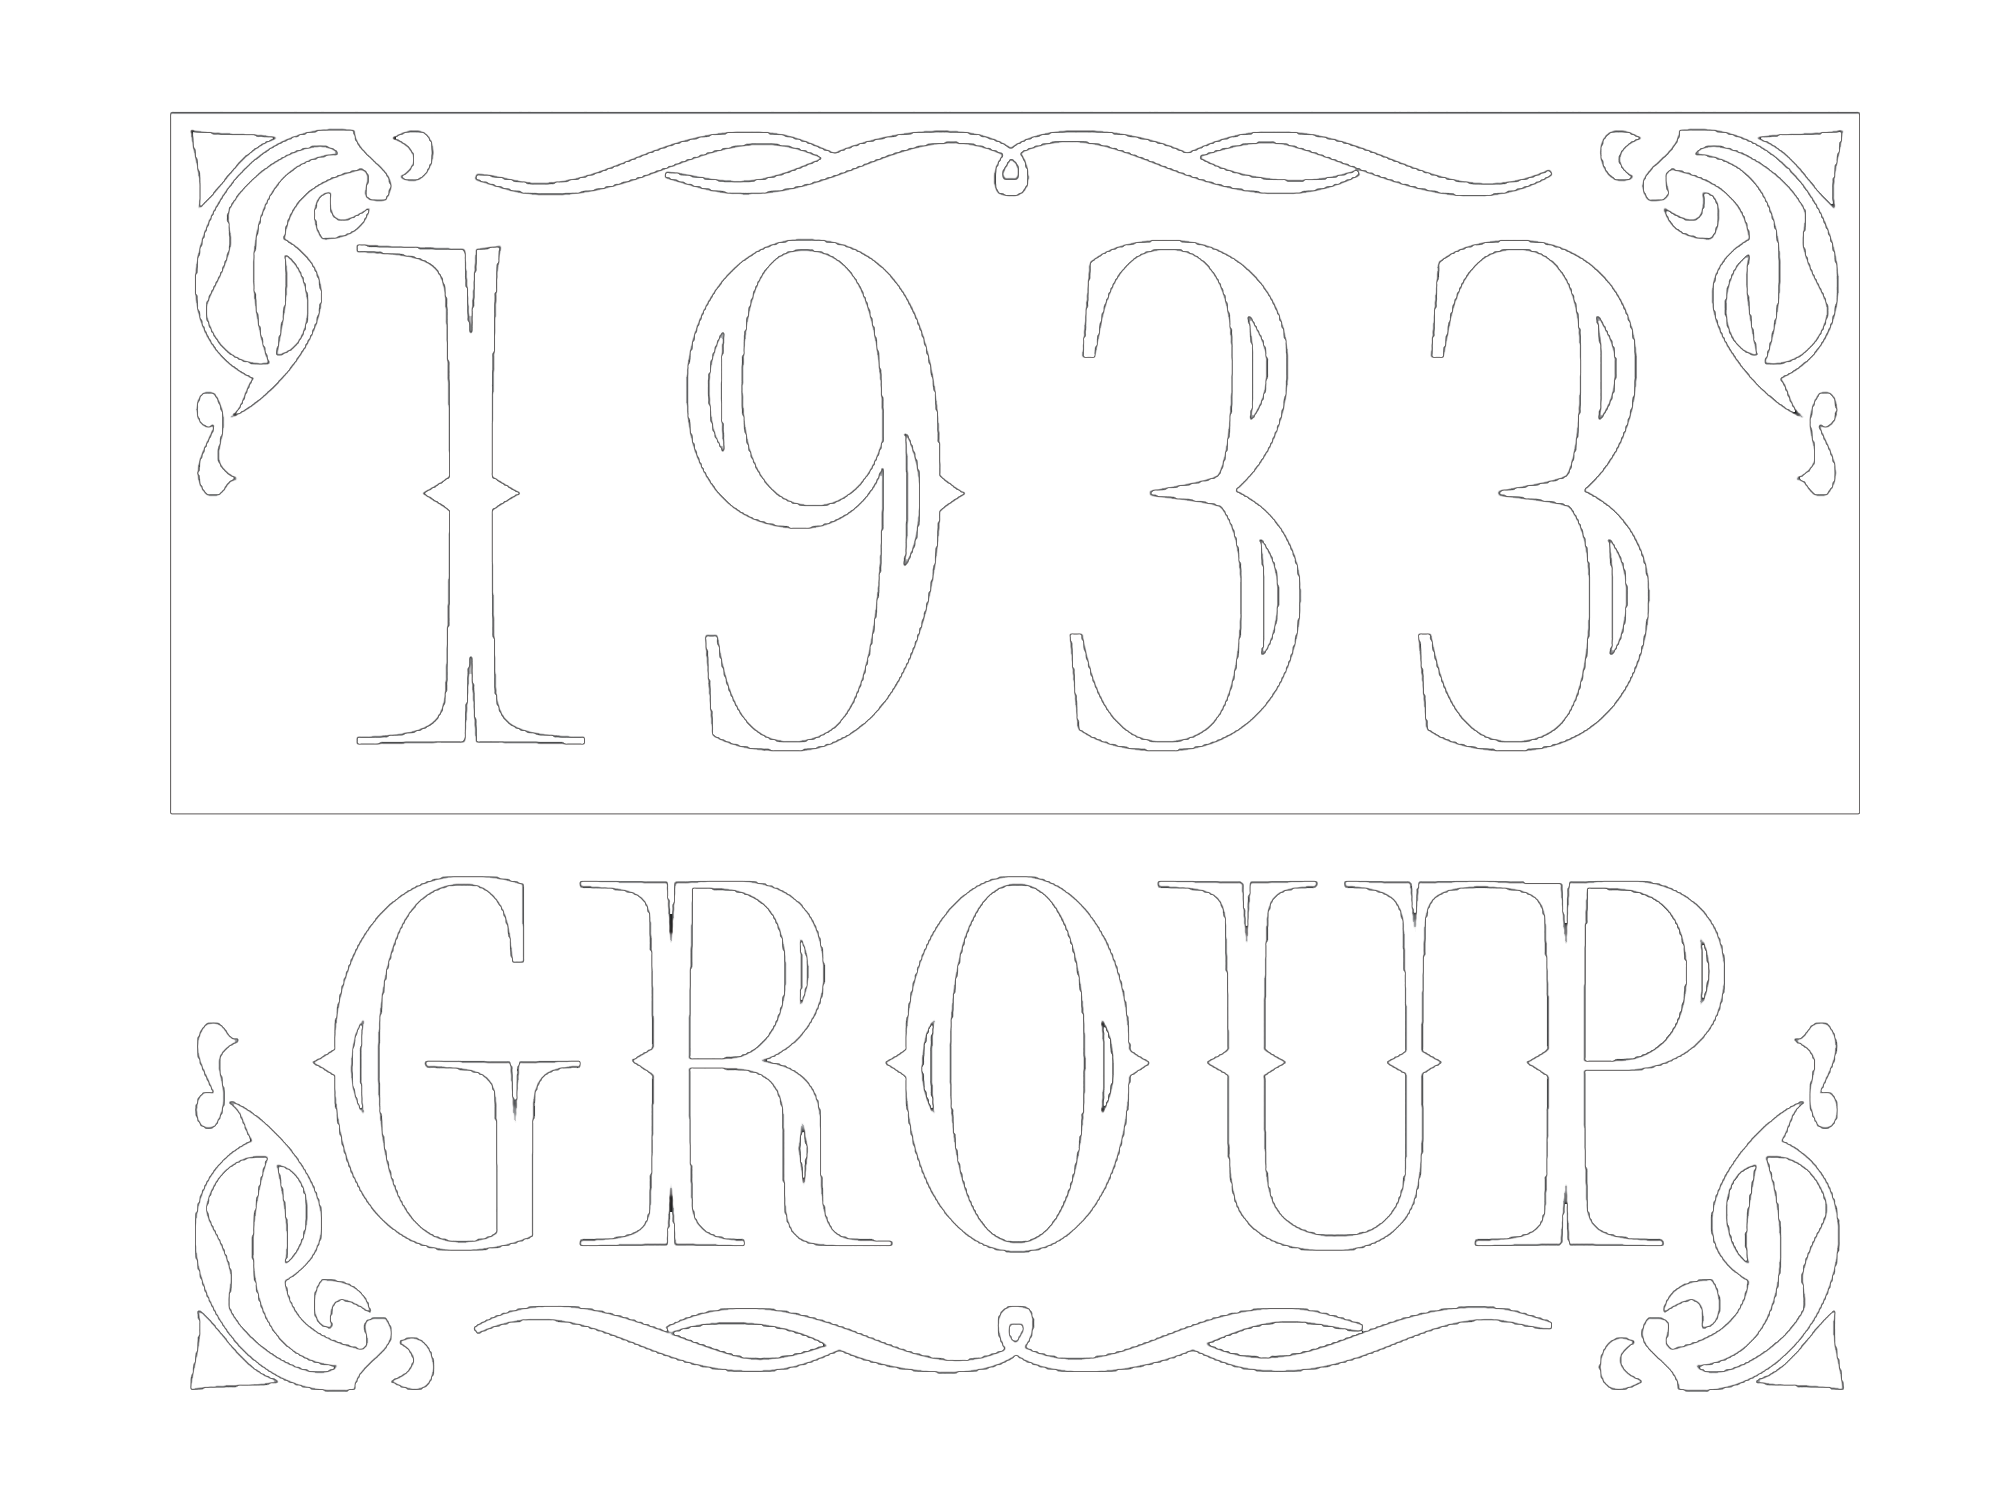 1933group_white1.png